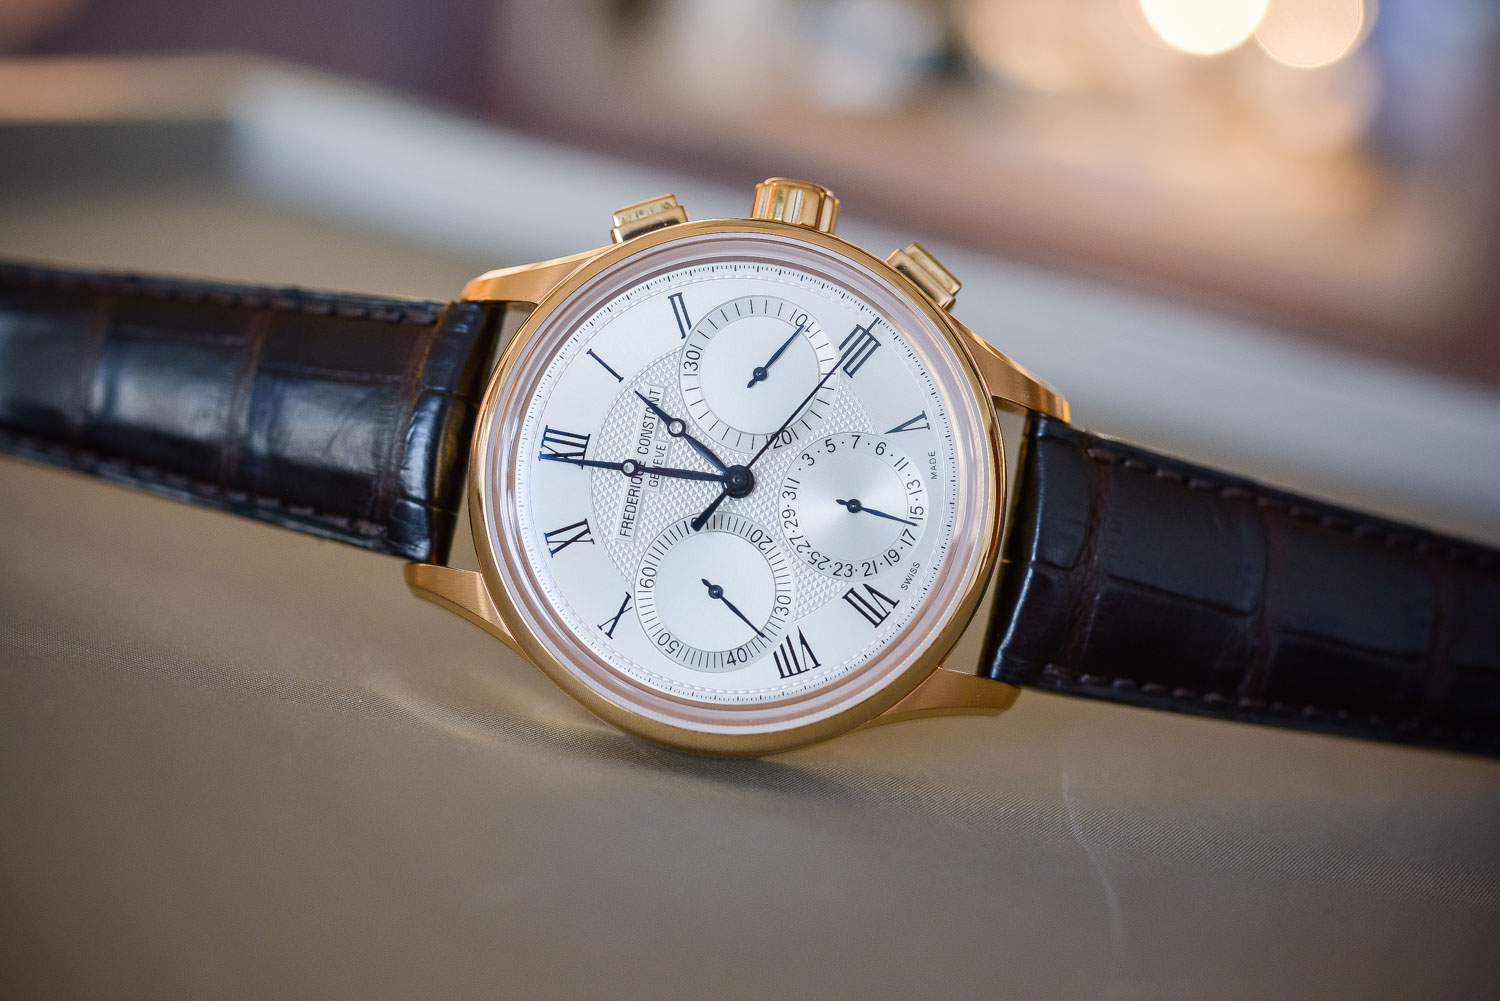 Frederique Constant Flyback Chronograph Manufacture - Baselworld 2017